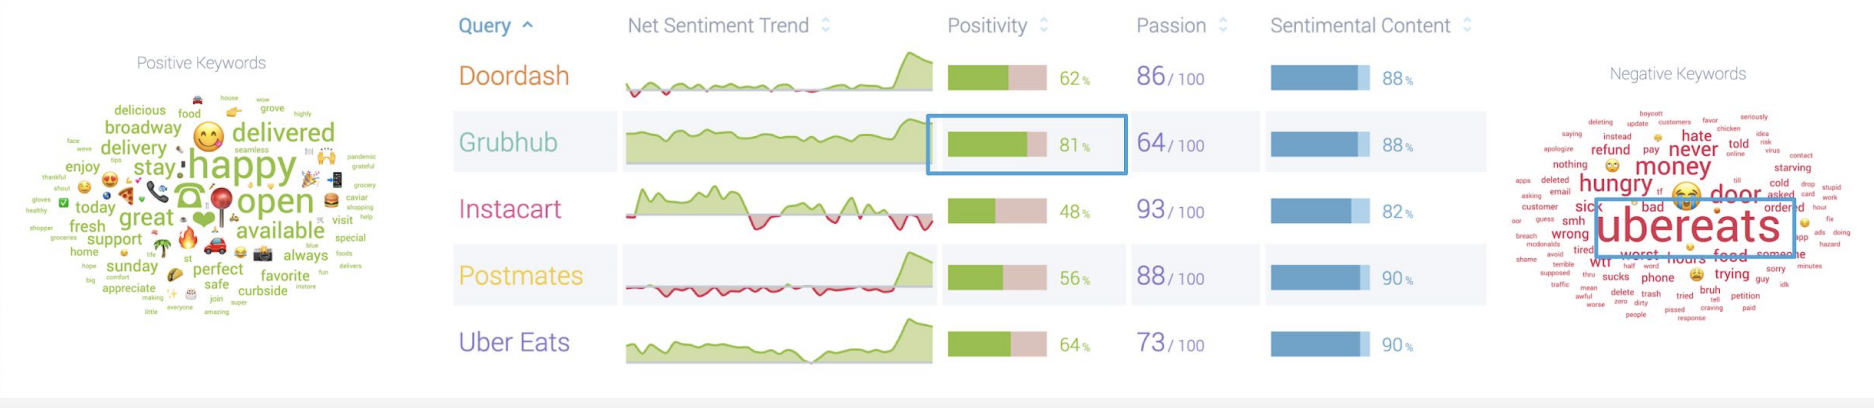 sentiment analysis of delivery apps using social listening